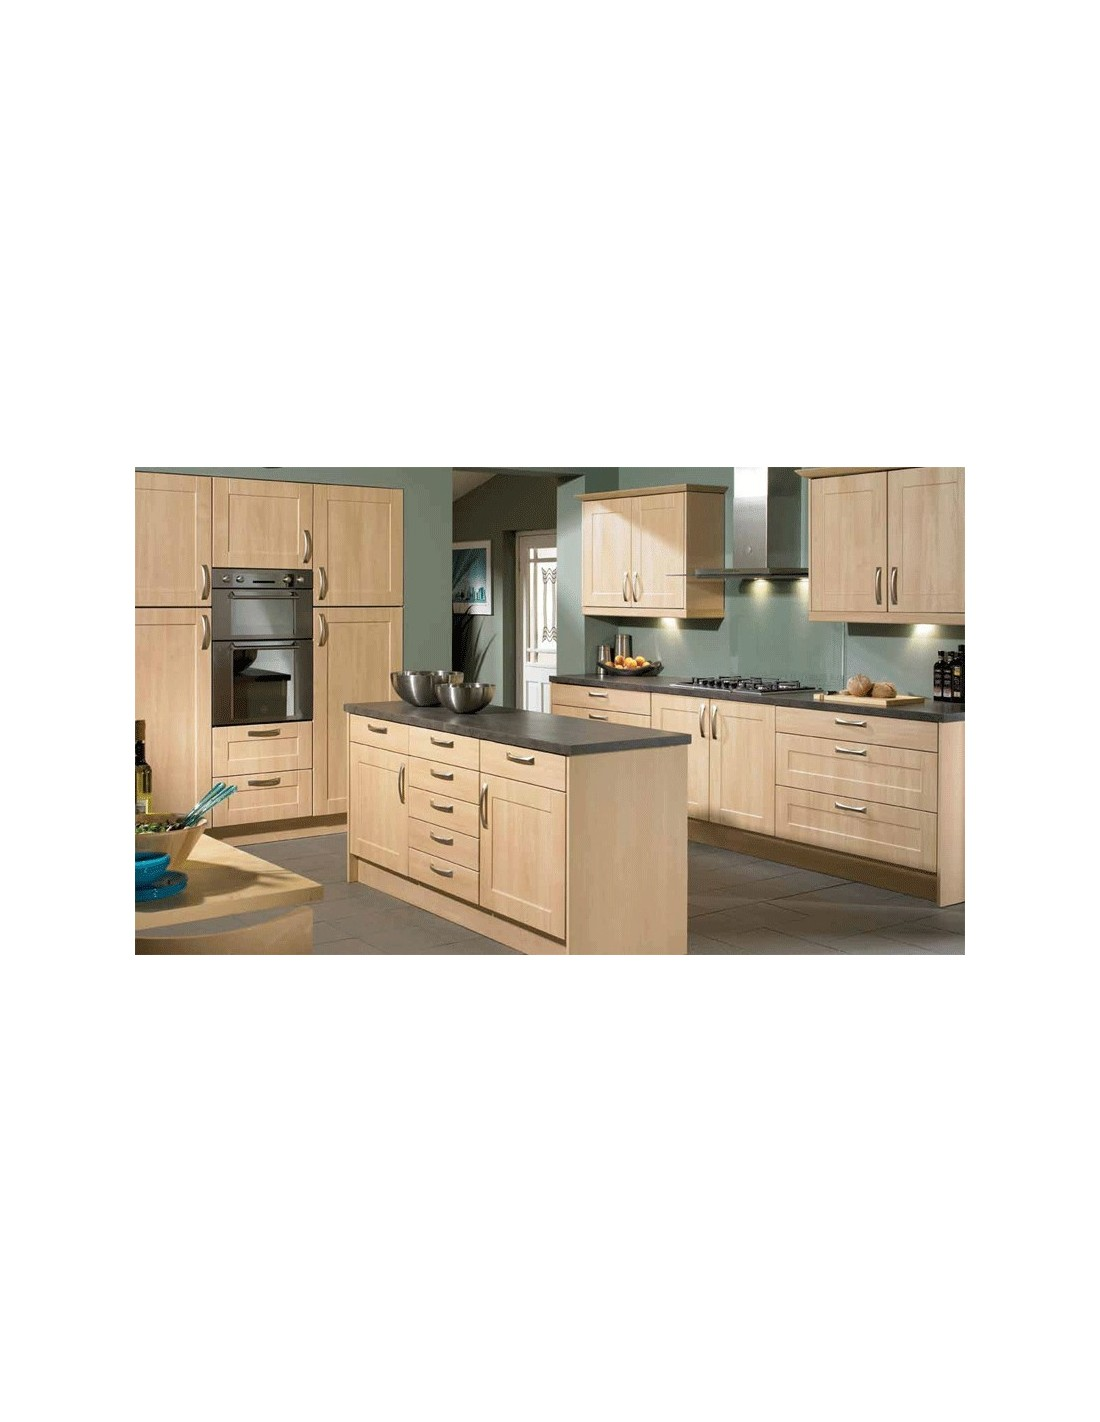 Cologne ontario maple shaker style kitchen doors units for Shaker style kitchen units